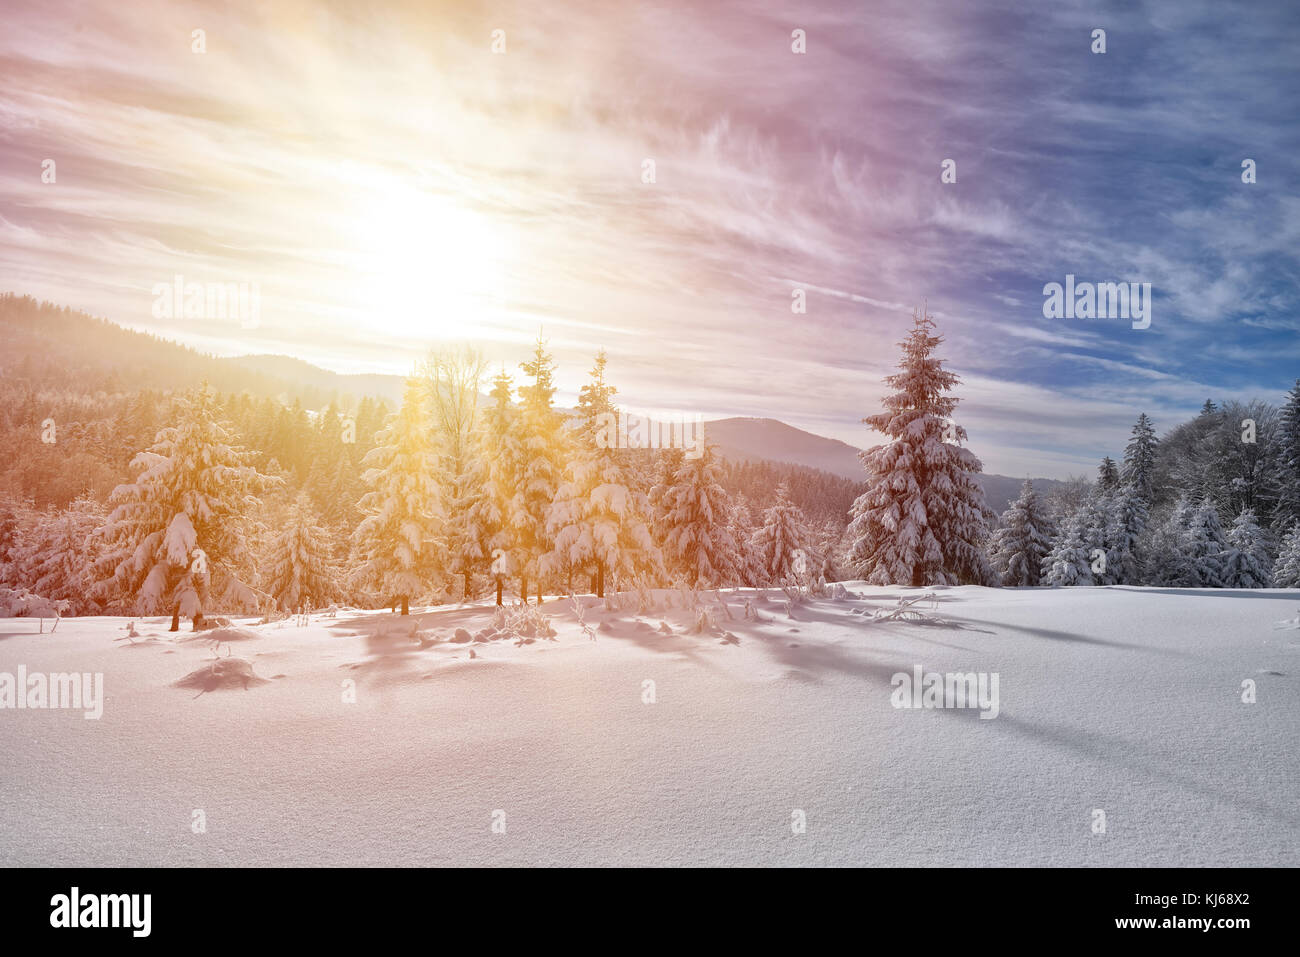 Majestic white spruces glowing by sunlight. Picturesque and gorgeous wintry scene. - Stock Image